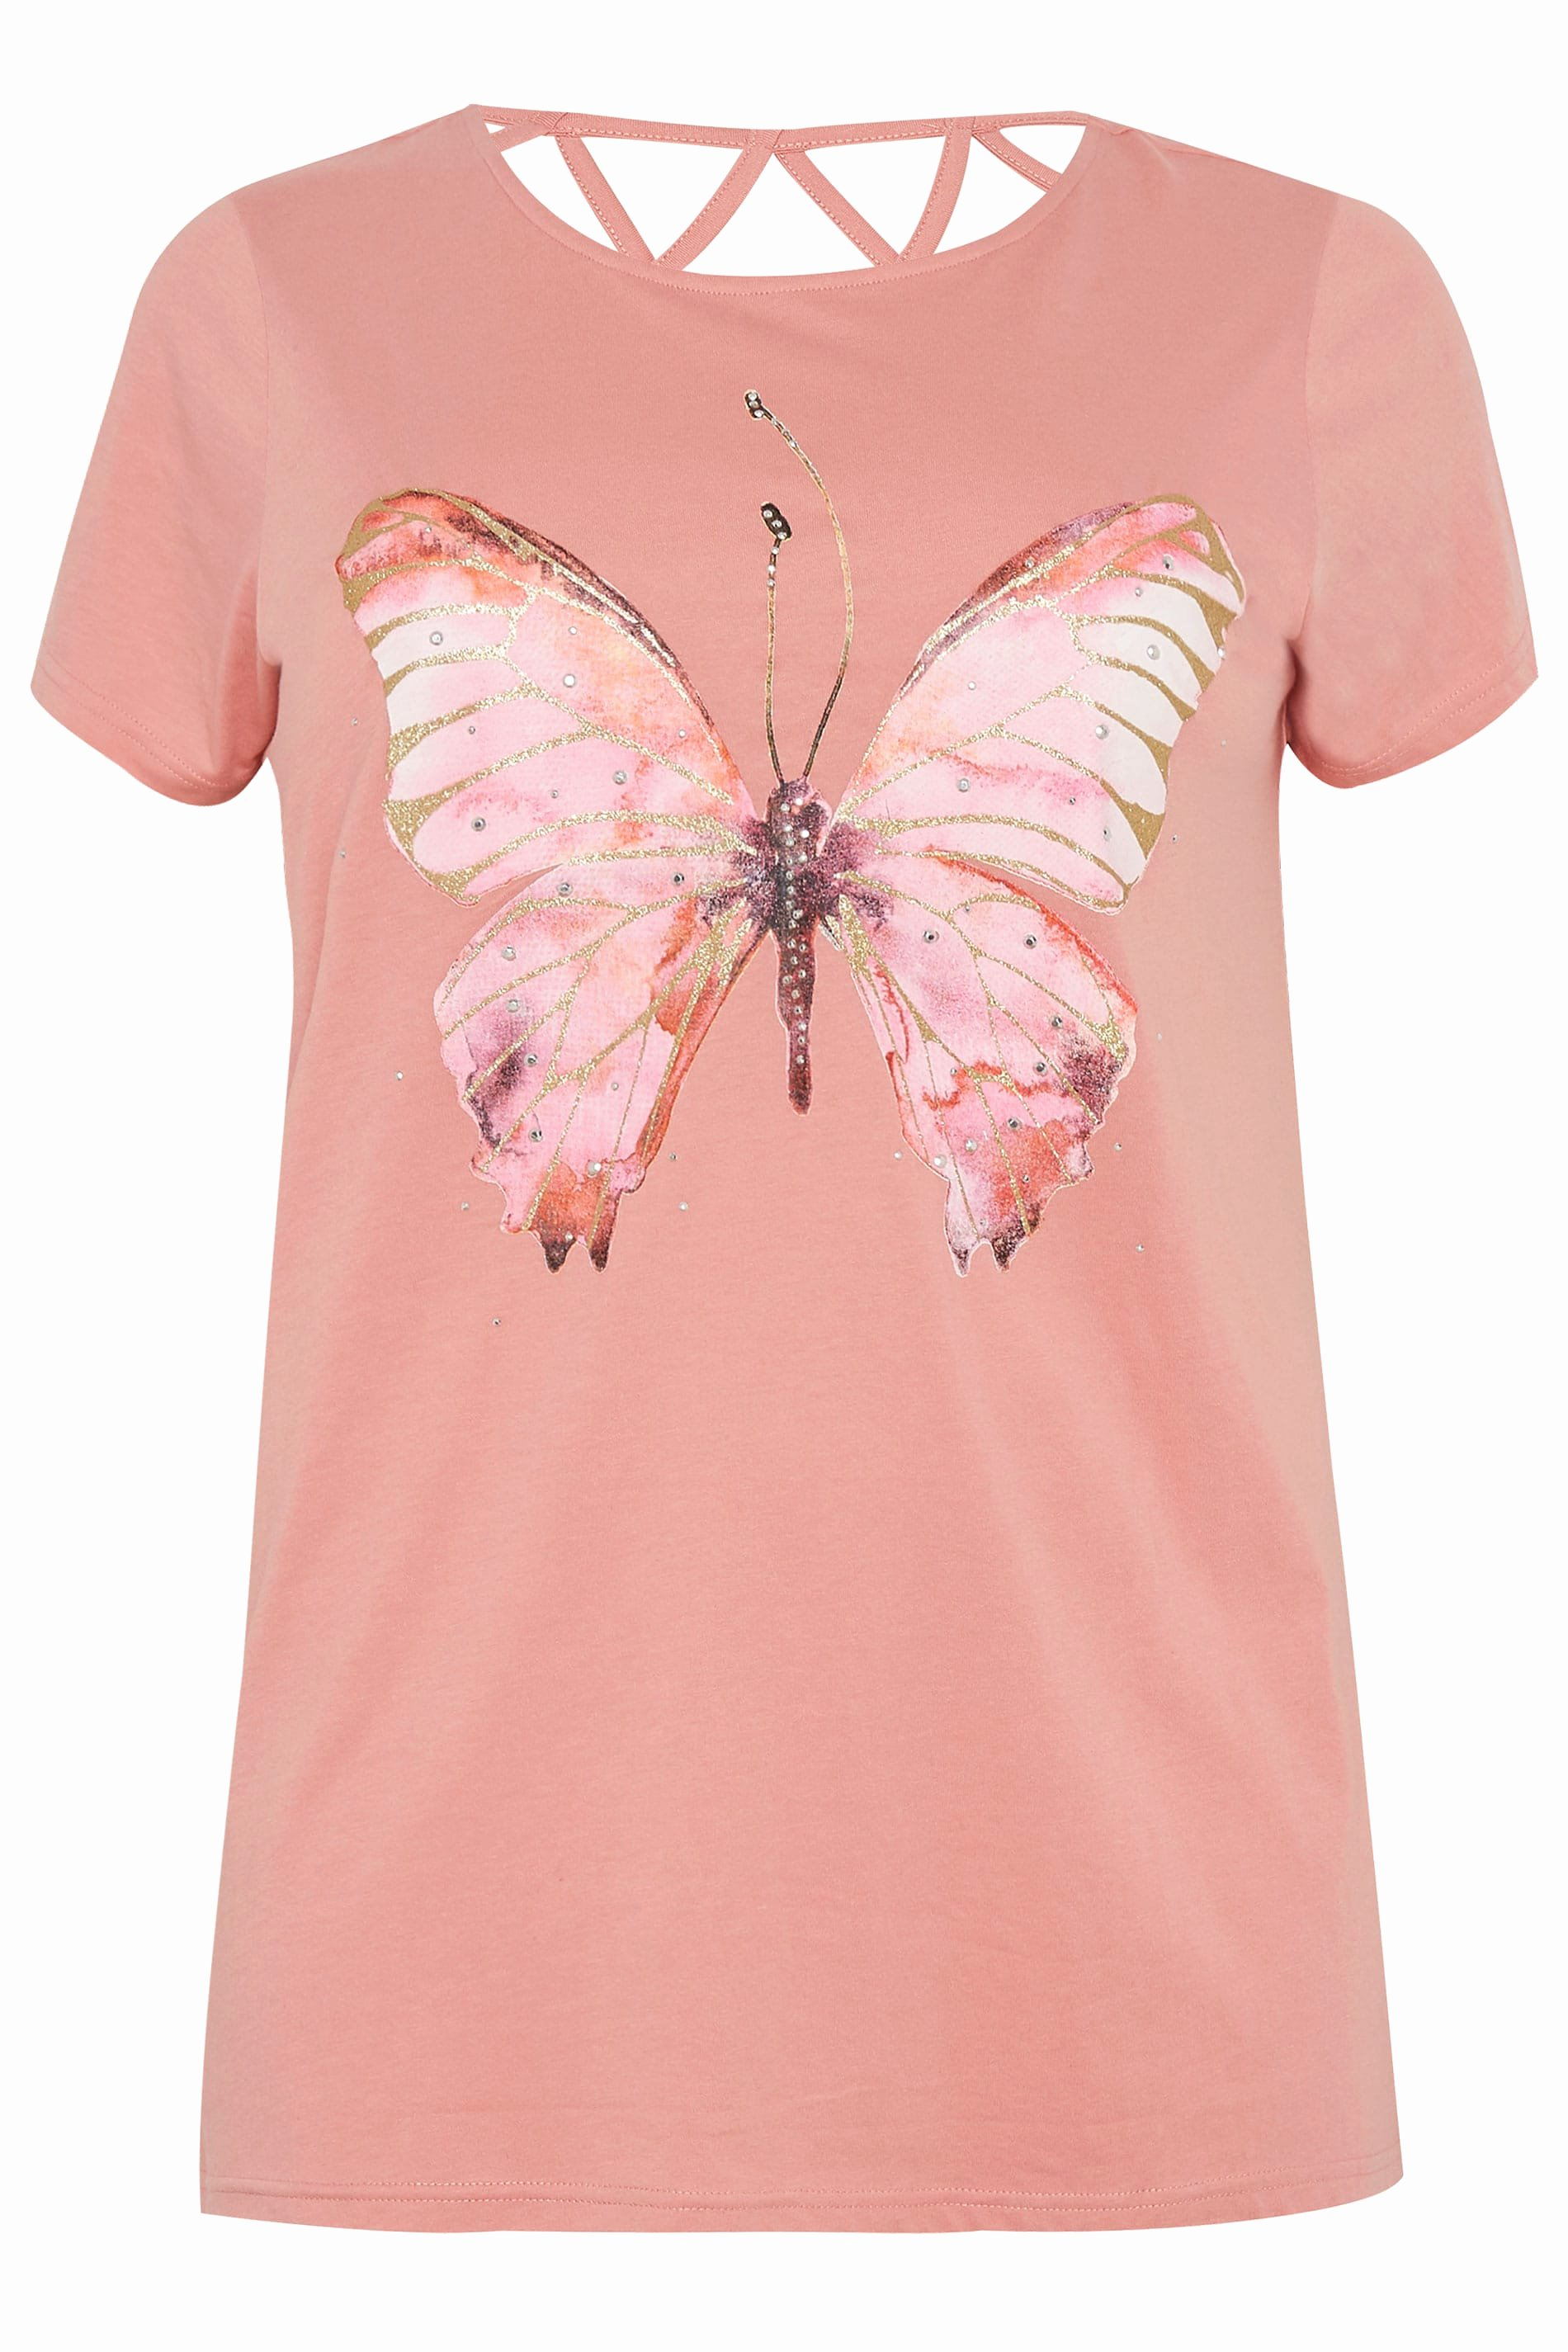 Plus Size Pink butterfly Sparkle T Shirt with Lattice Back